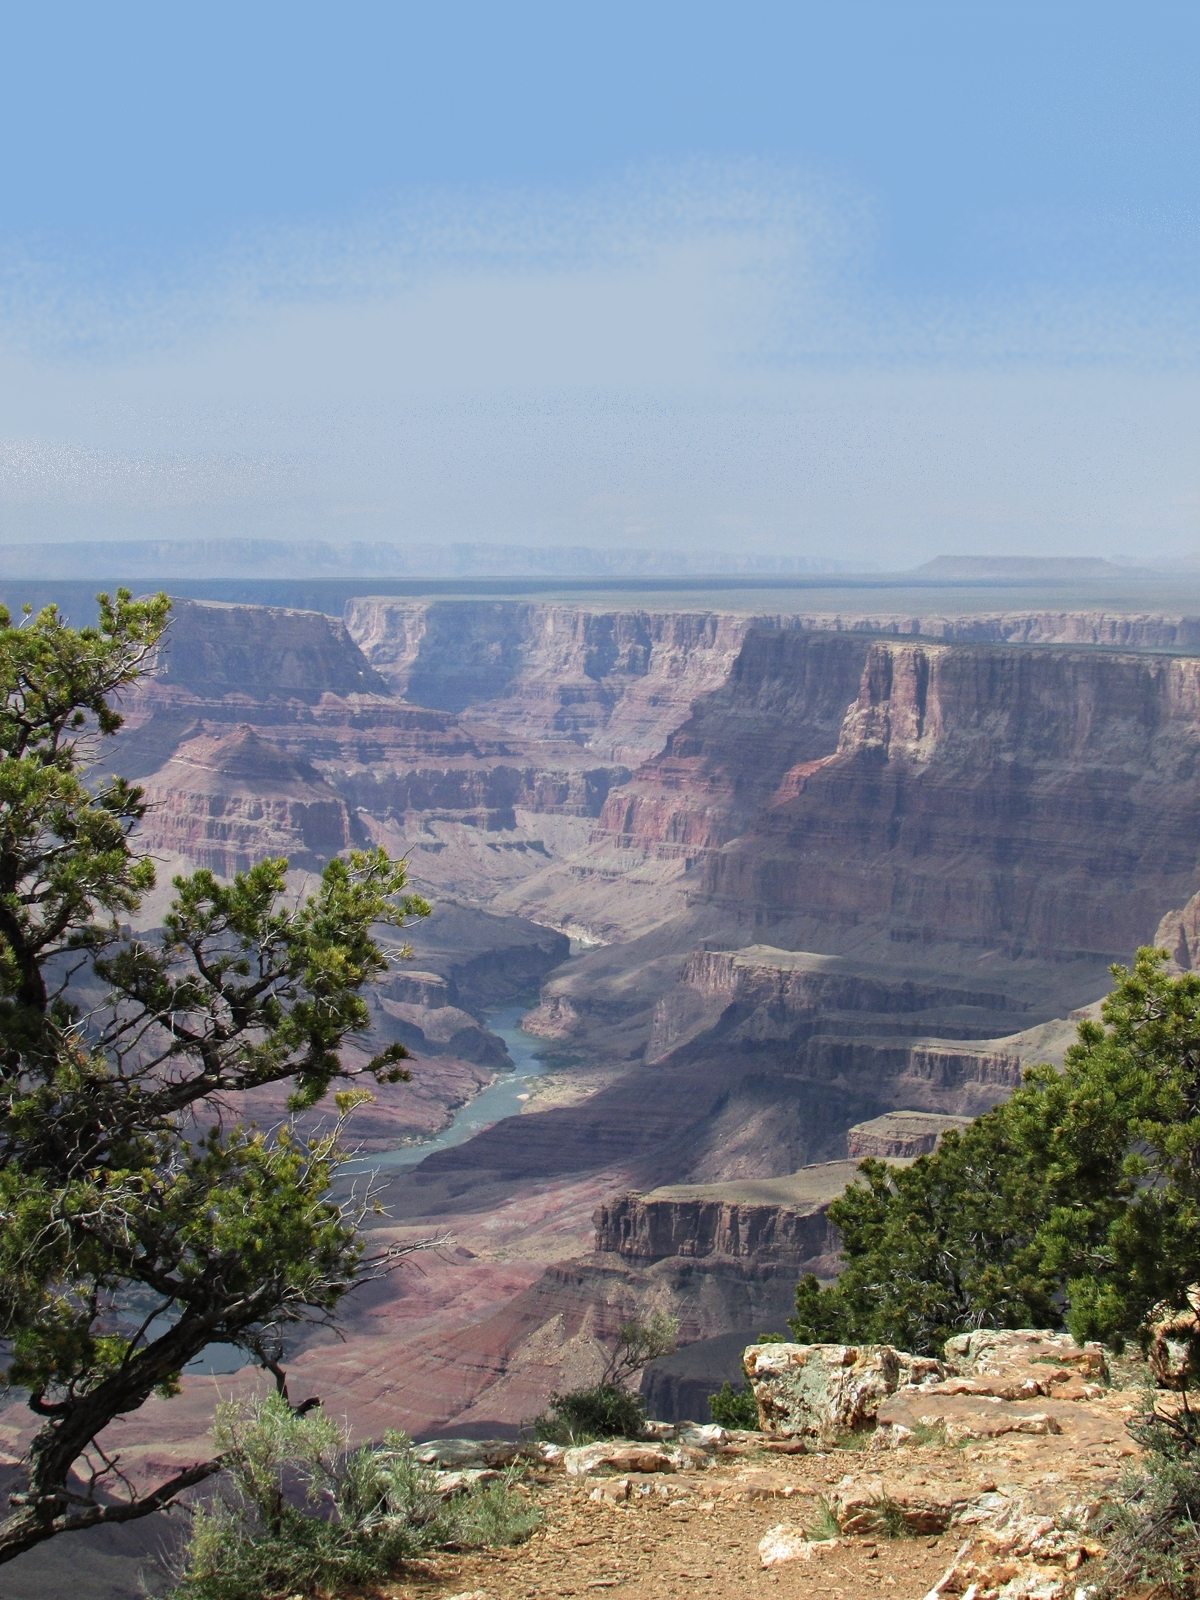 Grand Canyon Hubschrauber Flug - Südrand - Roadtrip - USA Amerika - Fashionladyloves by Tamara Wagner - Travelblog